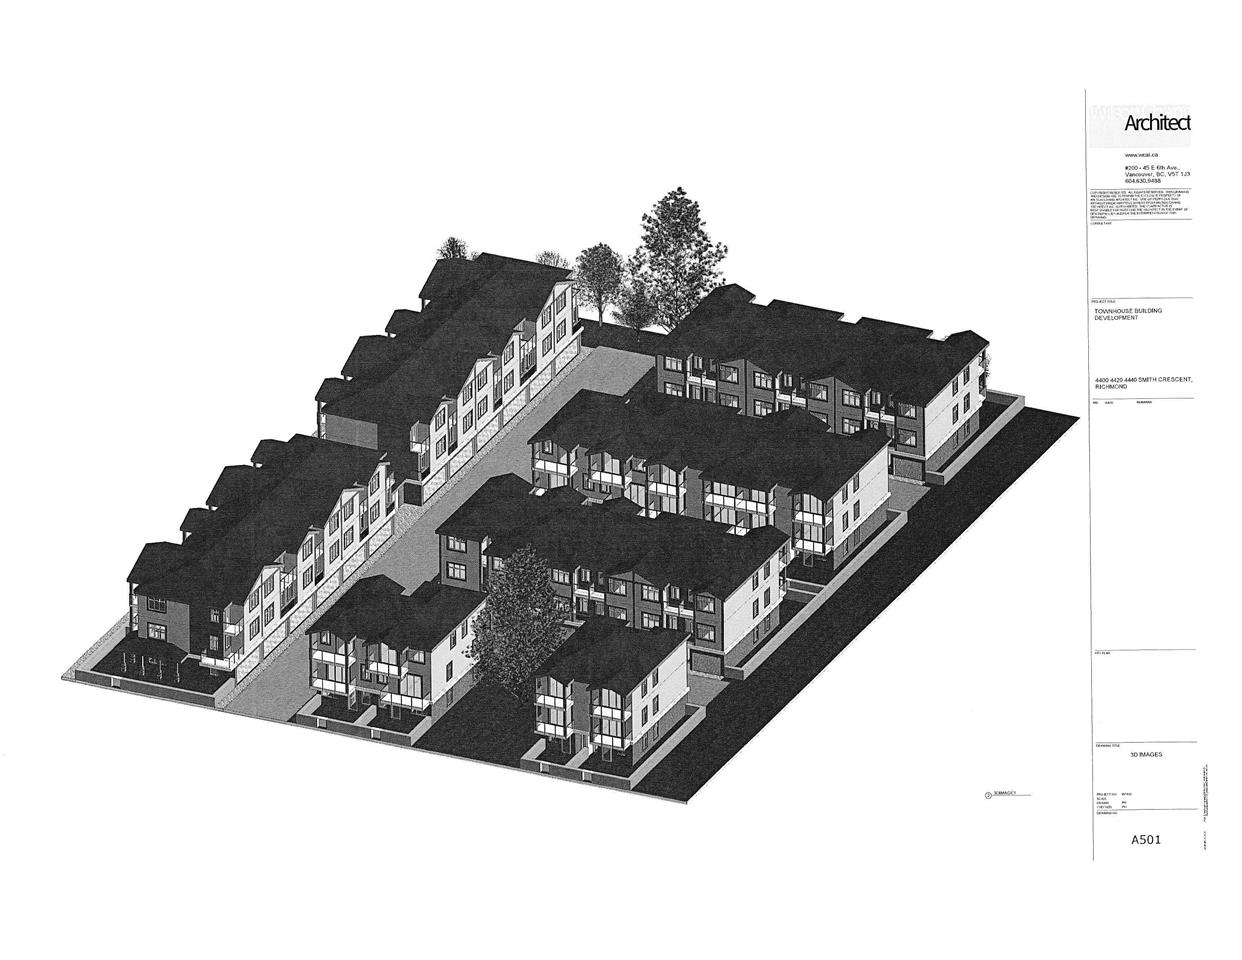 EXCELLENT OPPORTUNITY! INVESTORS/DEVELOPERS ALERT! PARK FACING  TOWNHOUSE SITE. 3 lots in total: 4400, 4420 and 4440 Smith Crescent where the total lot size is approx 65,991sf with buildable FAR 0.75, approved to develop 34 mixed units of 3 storey townhouses with total FAR of 49,498 sf. The site is under rezoning and Development Permit circulation, purchase price includes all the drawings and related documents. City of Richmond has expressed interest to allow the site to rezone to home care facility as well. Close to school and shopping. Tenanted! Please do not walk into the property or disturb the tenant. Call LS for details.